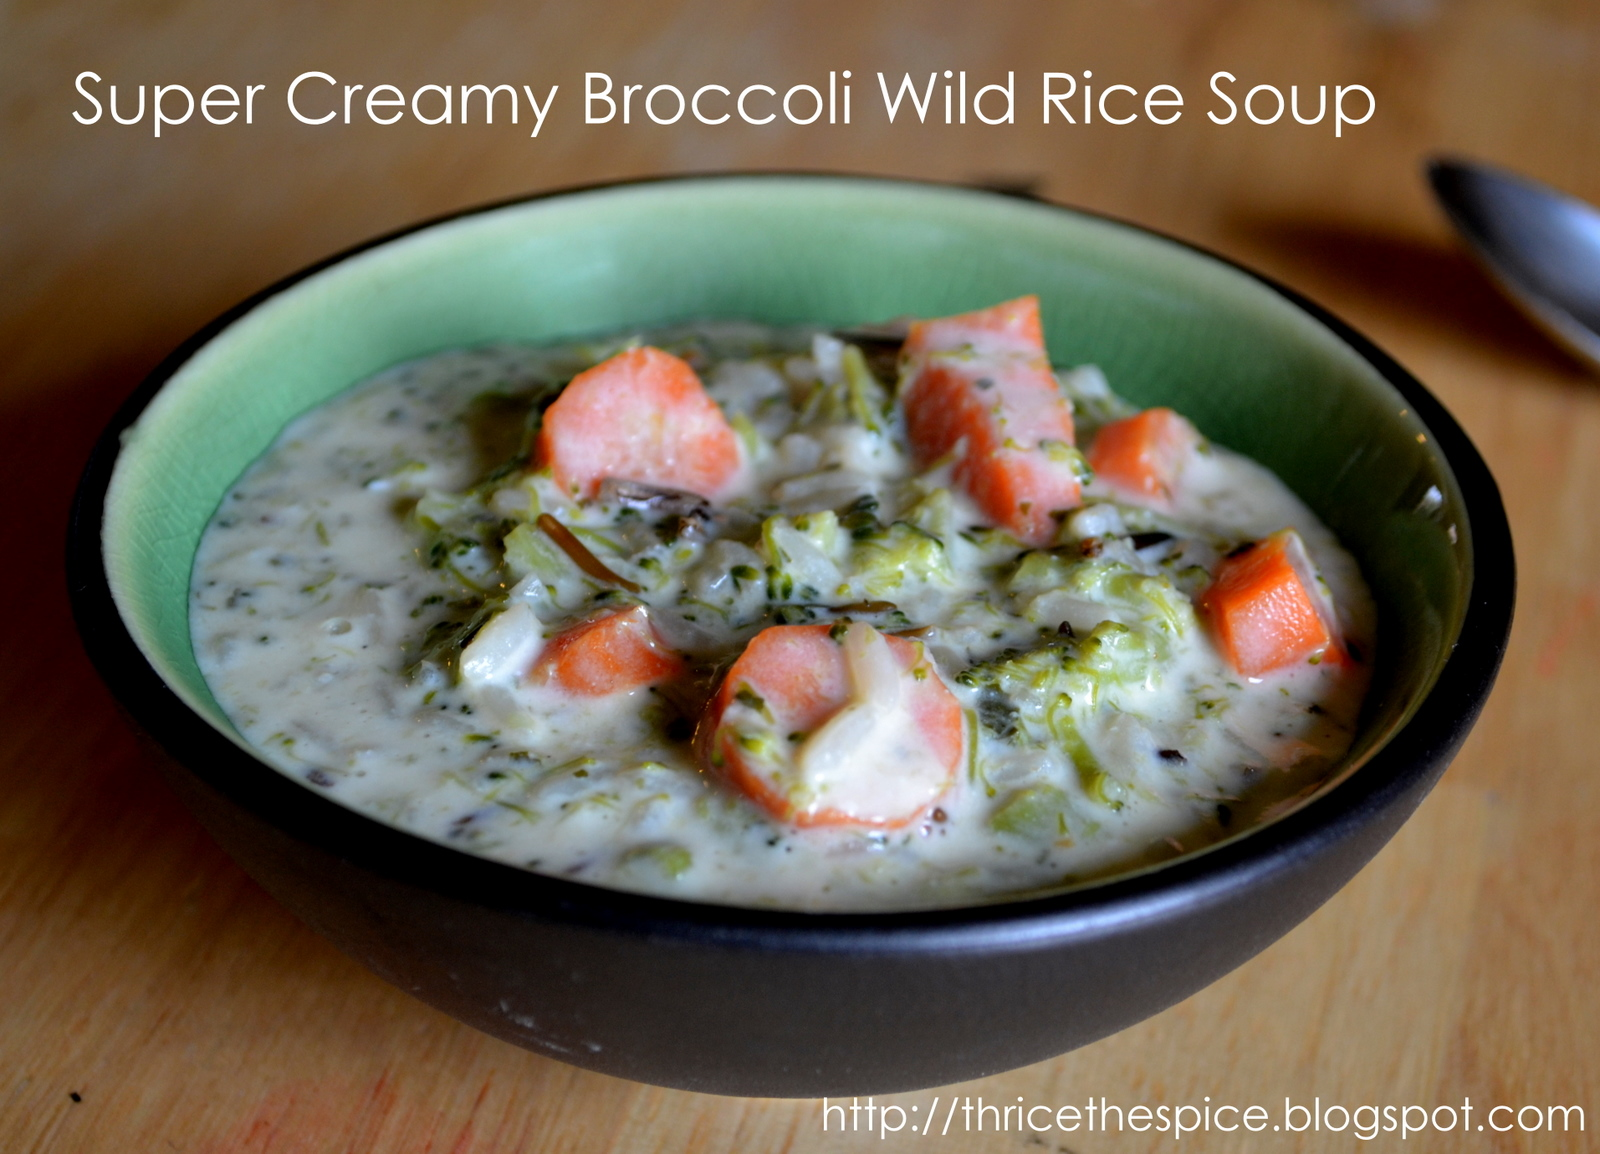 ... and wild rice soup vegetarian curried brown rice and broccoli